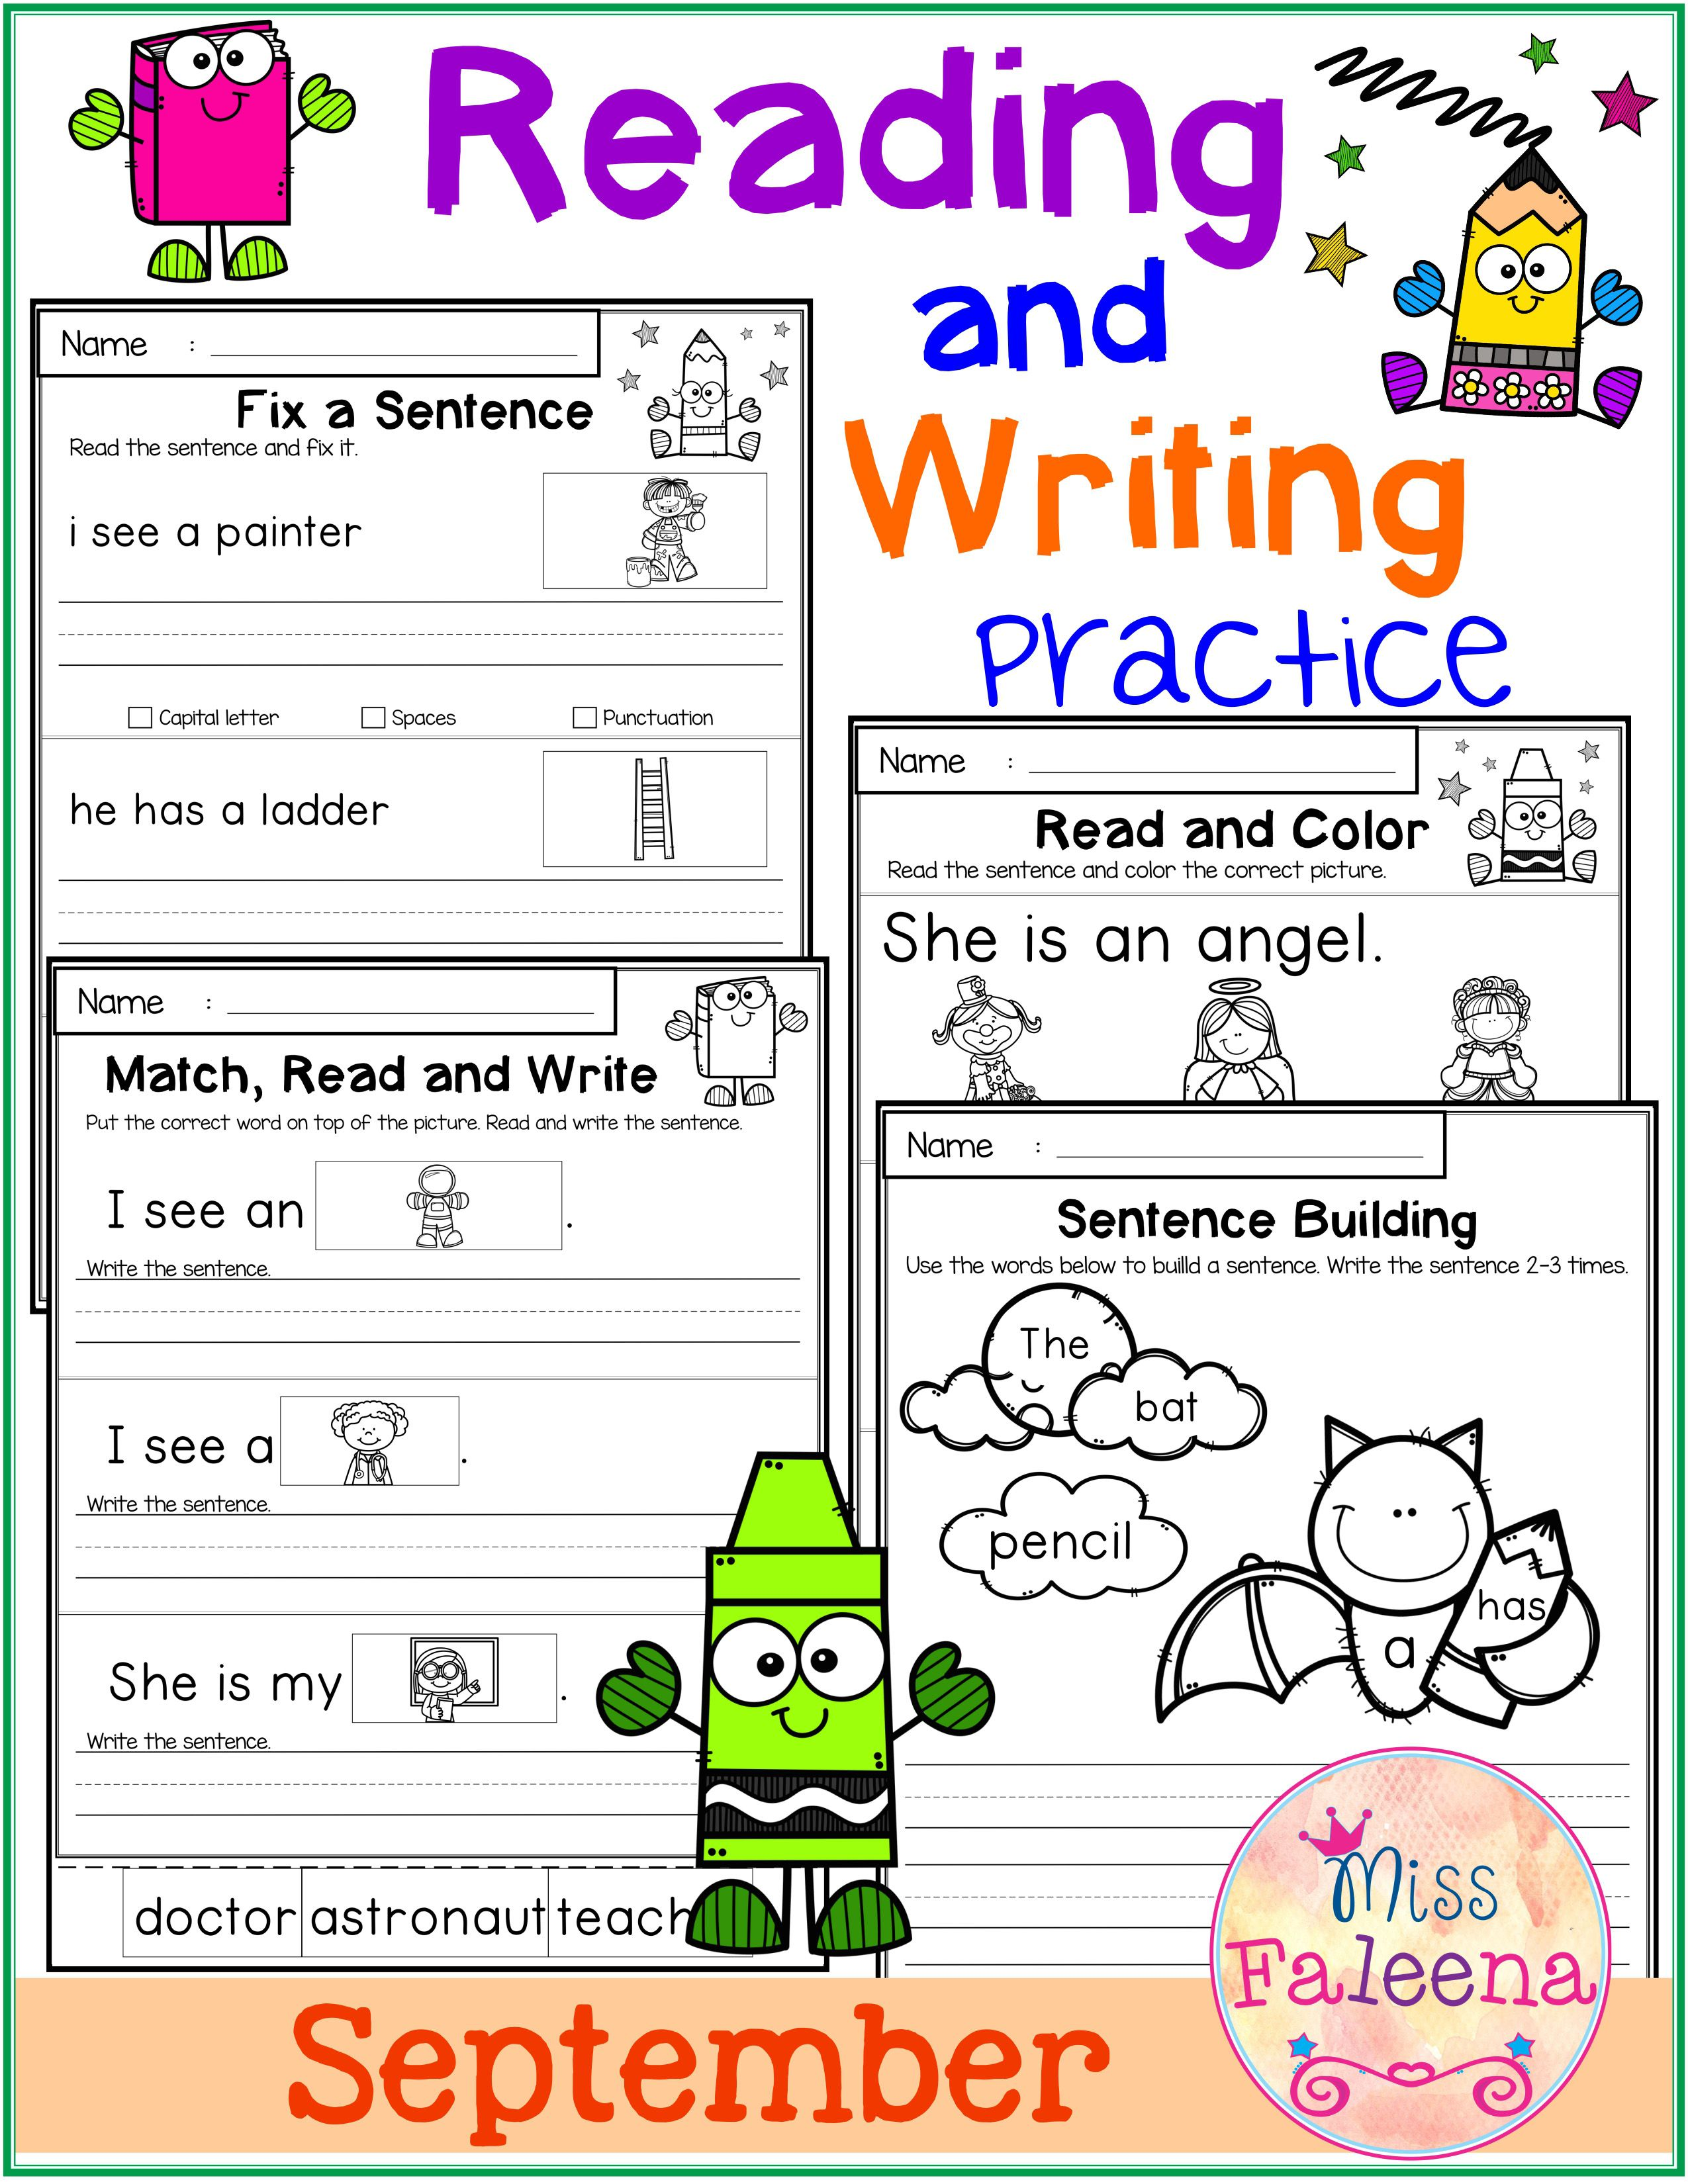 September Reading And Writing Practice